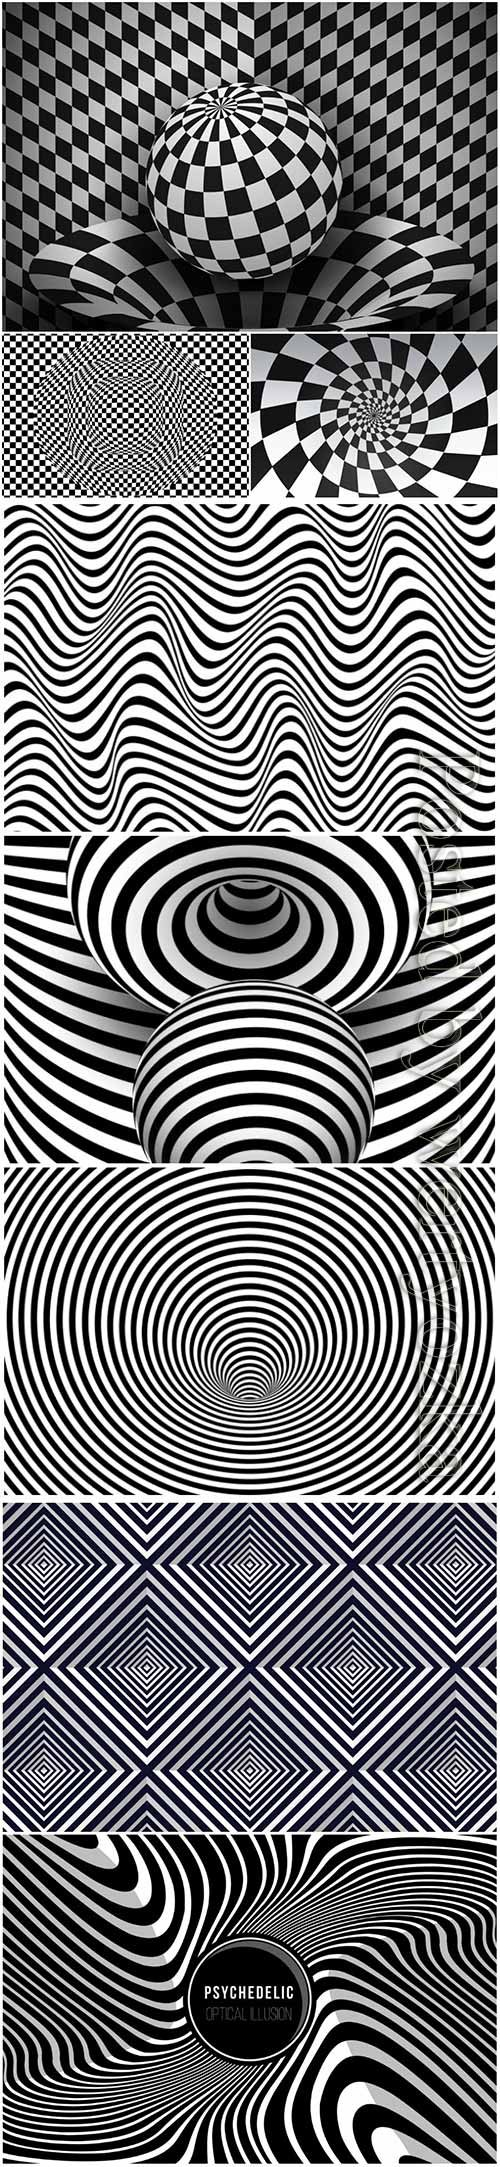 Psychedelic optical illusion vector background # 2